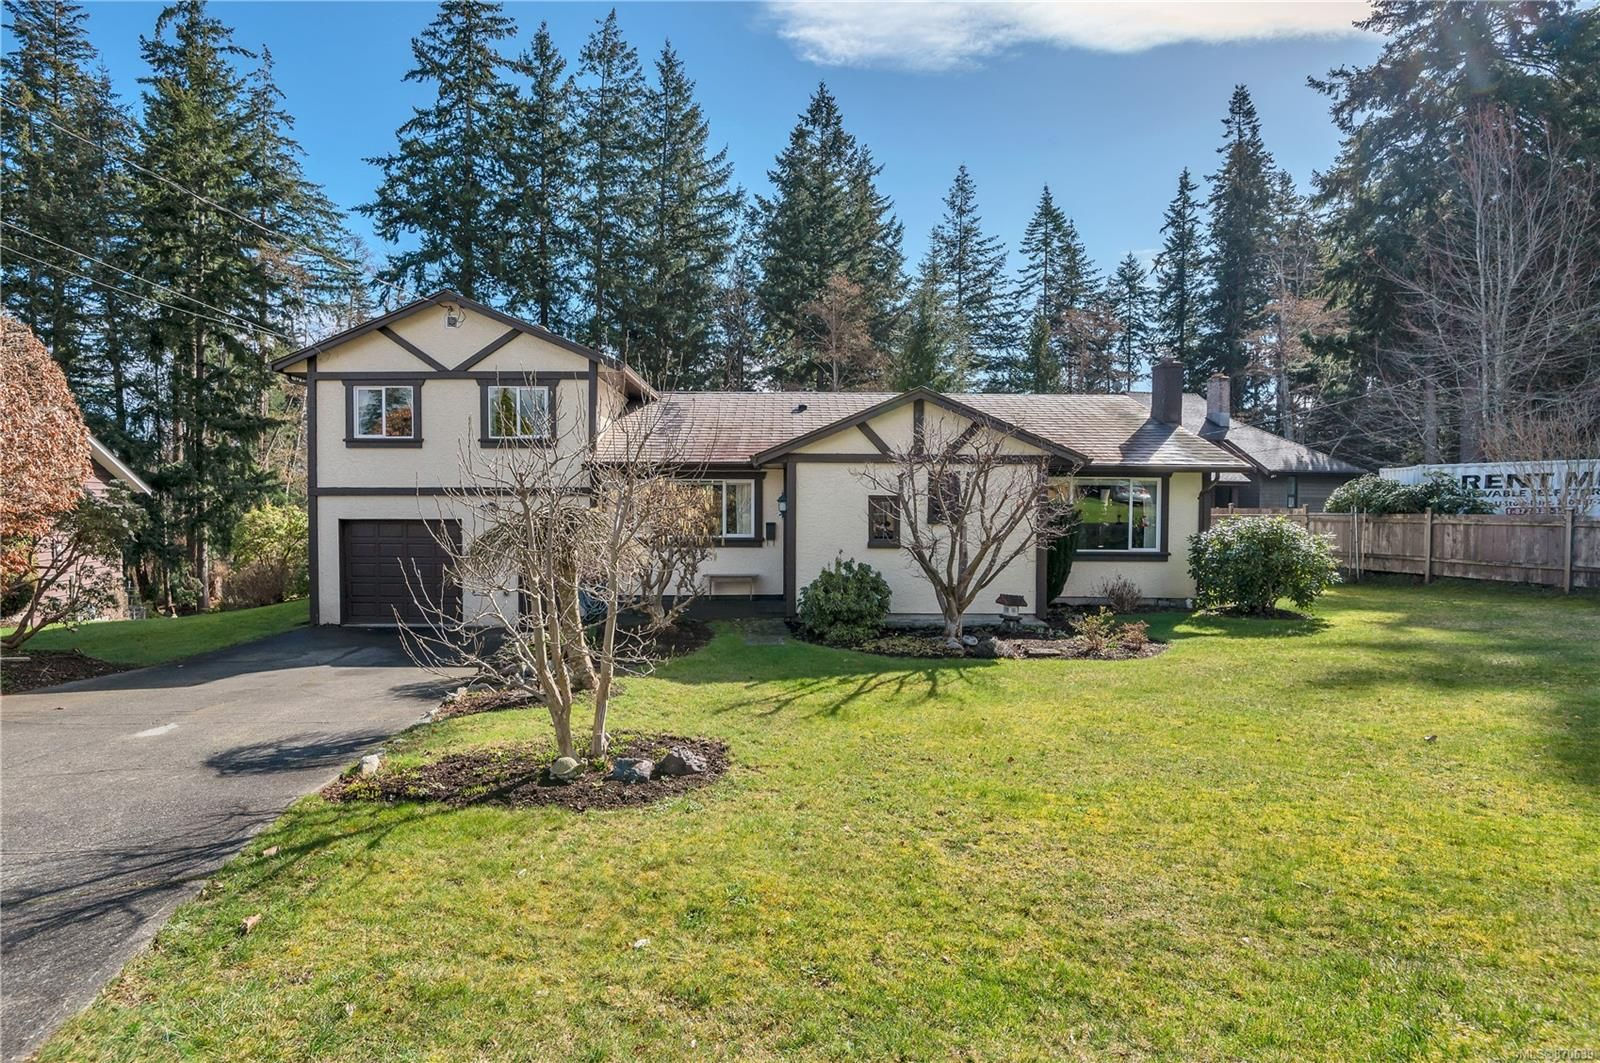 Main Photo: 2973 Martin Rd in : CR Willow Point House for sale (Campbell River)  : MLS®# 870639